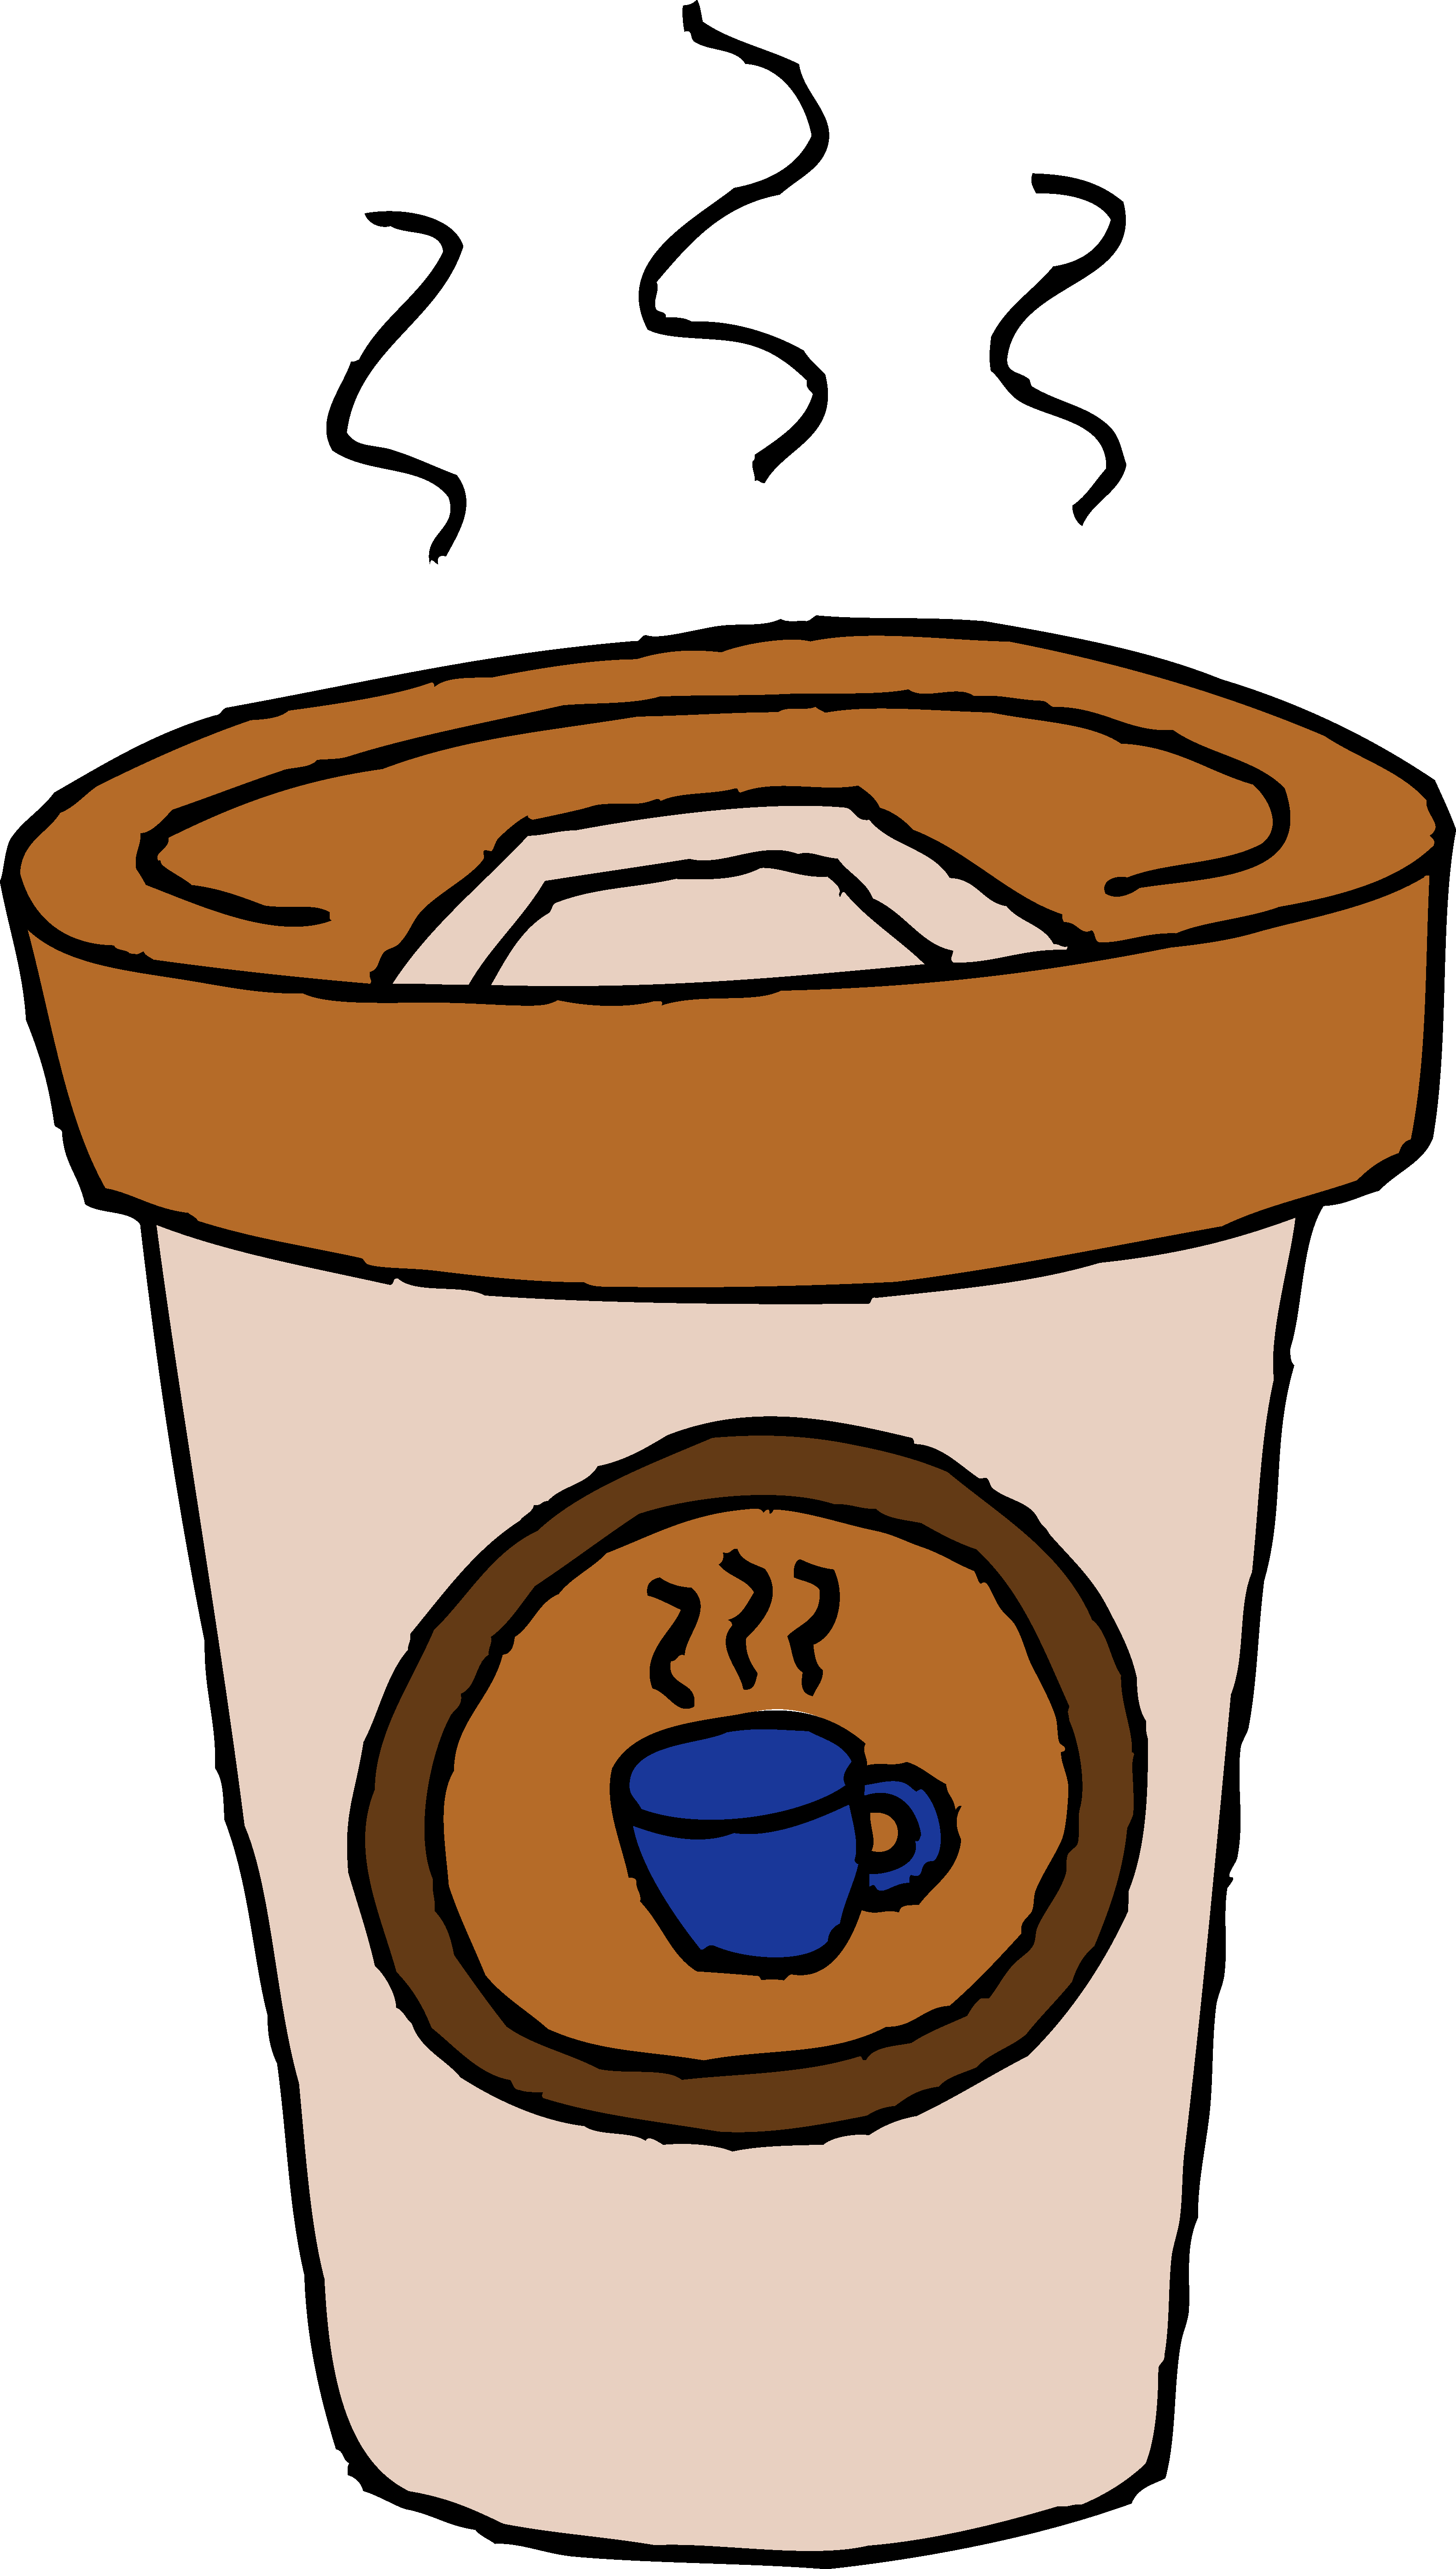 Coffee clipart latte art Cafe Zone Image Hot Of